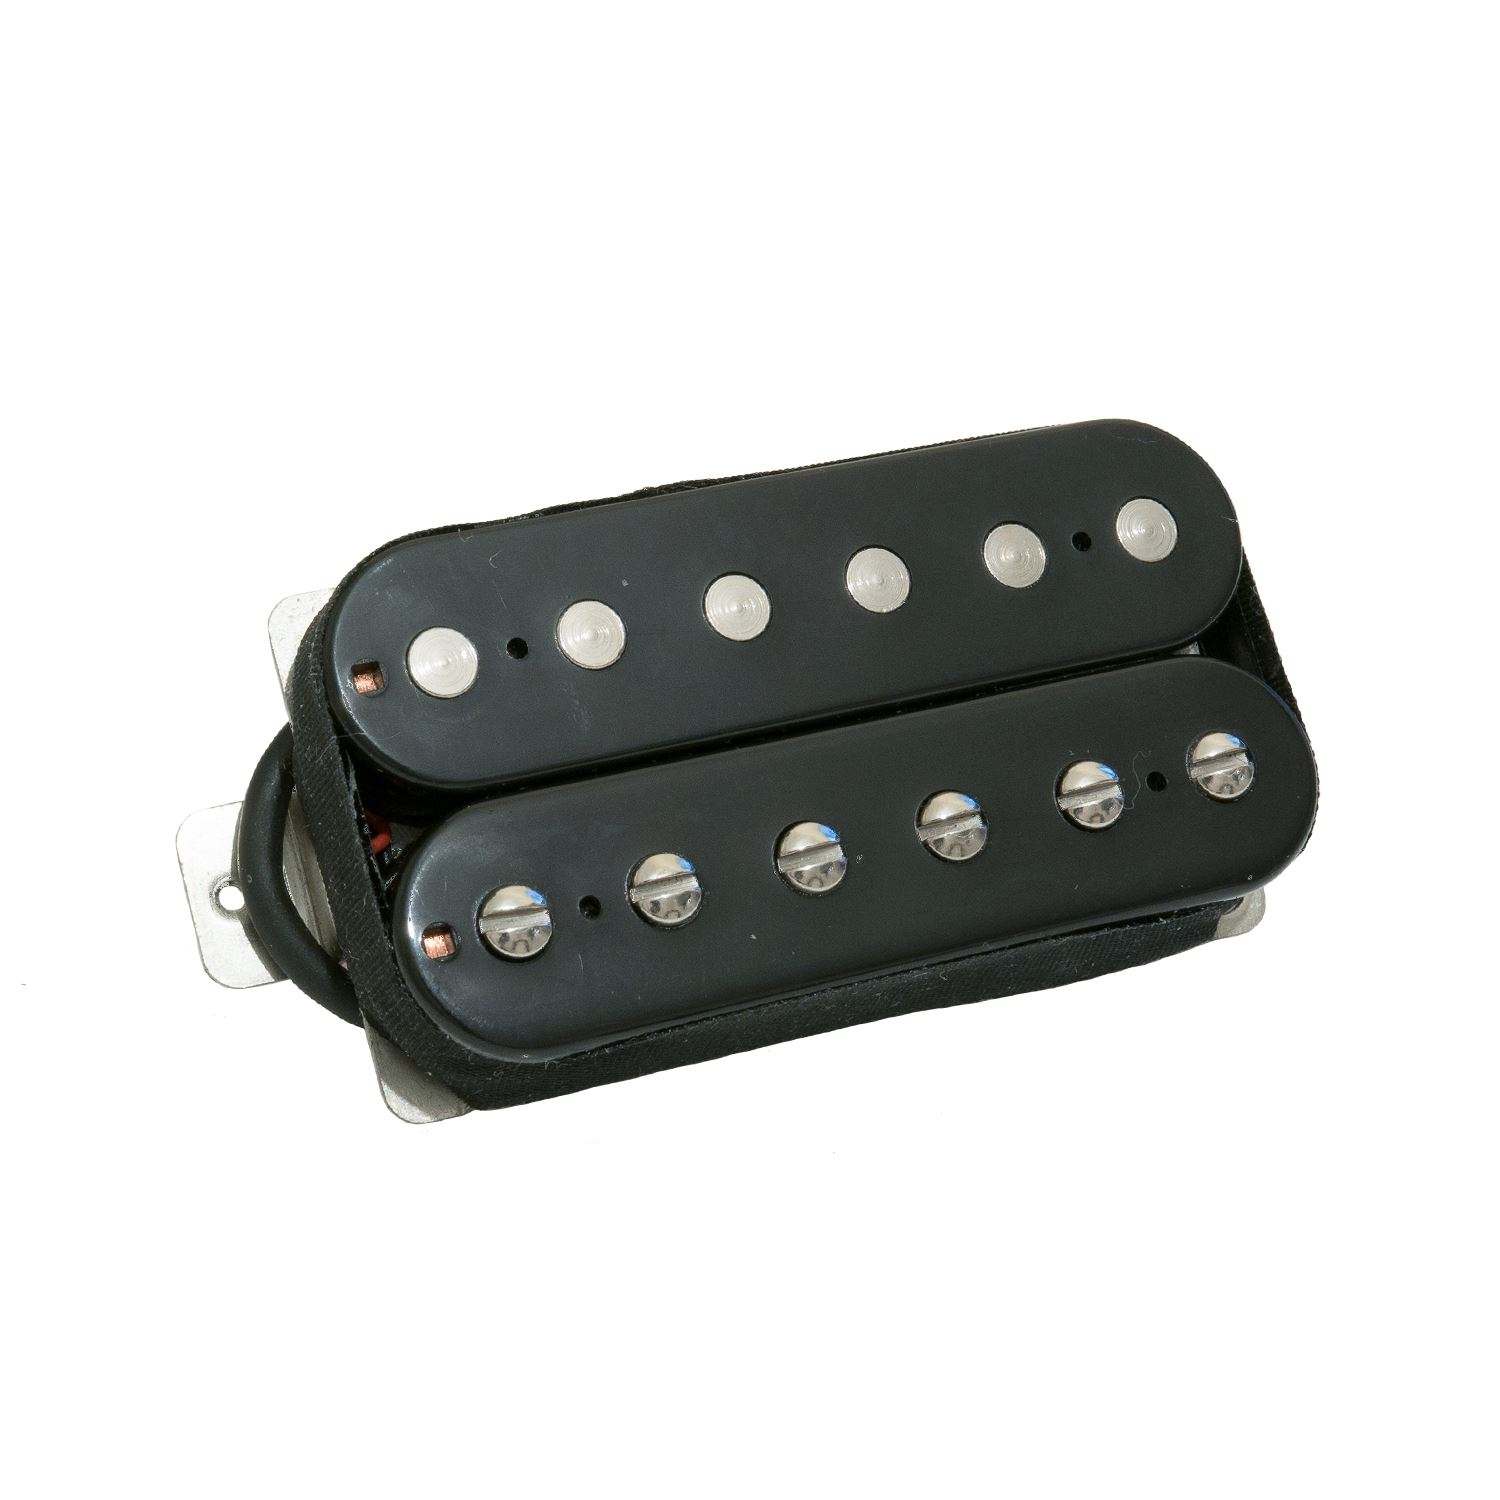 artec alnico v humbucker guitar pickups with adjustable pole pieces ebay. Black Bedroom Furniture Sets. Home Design Ideas